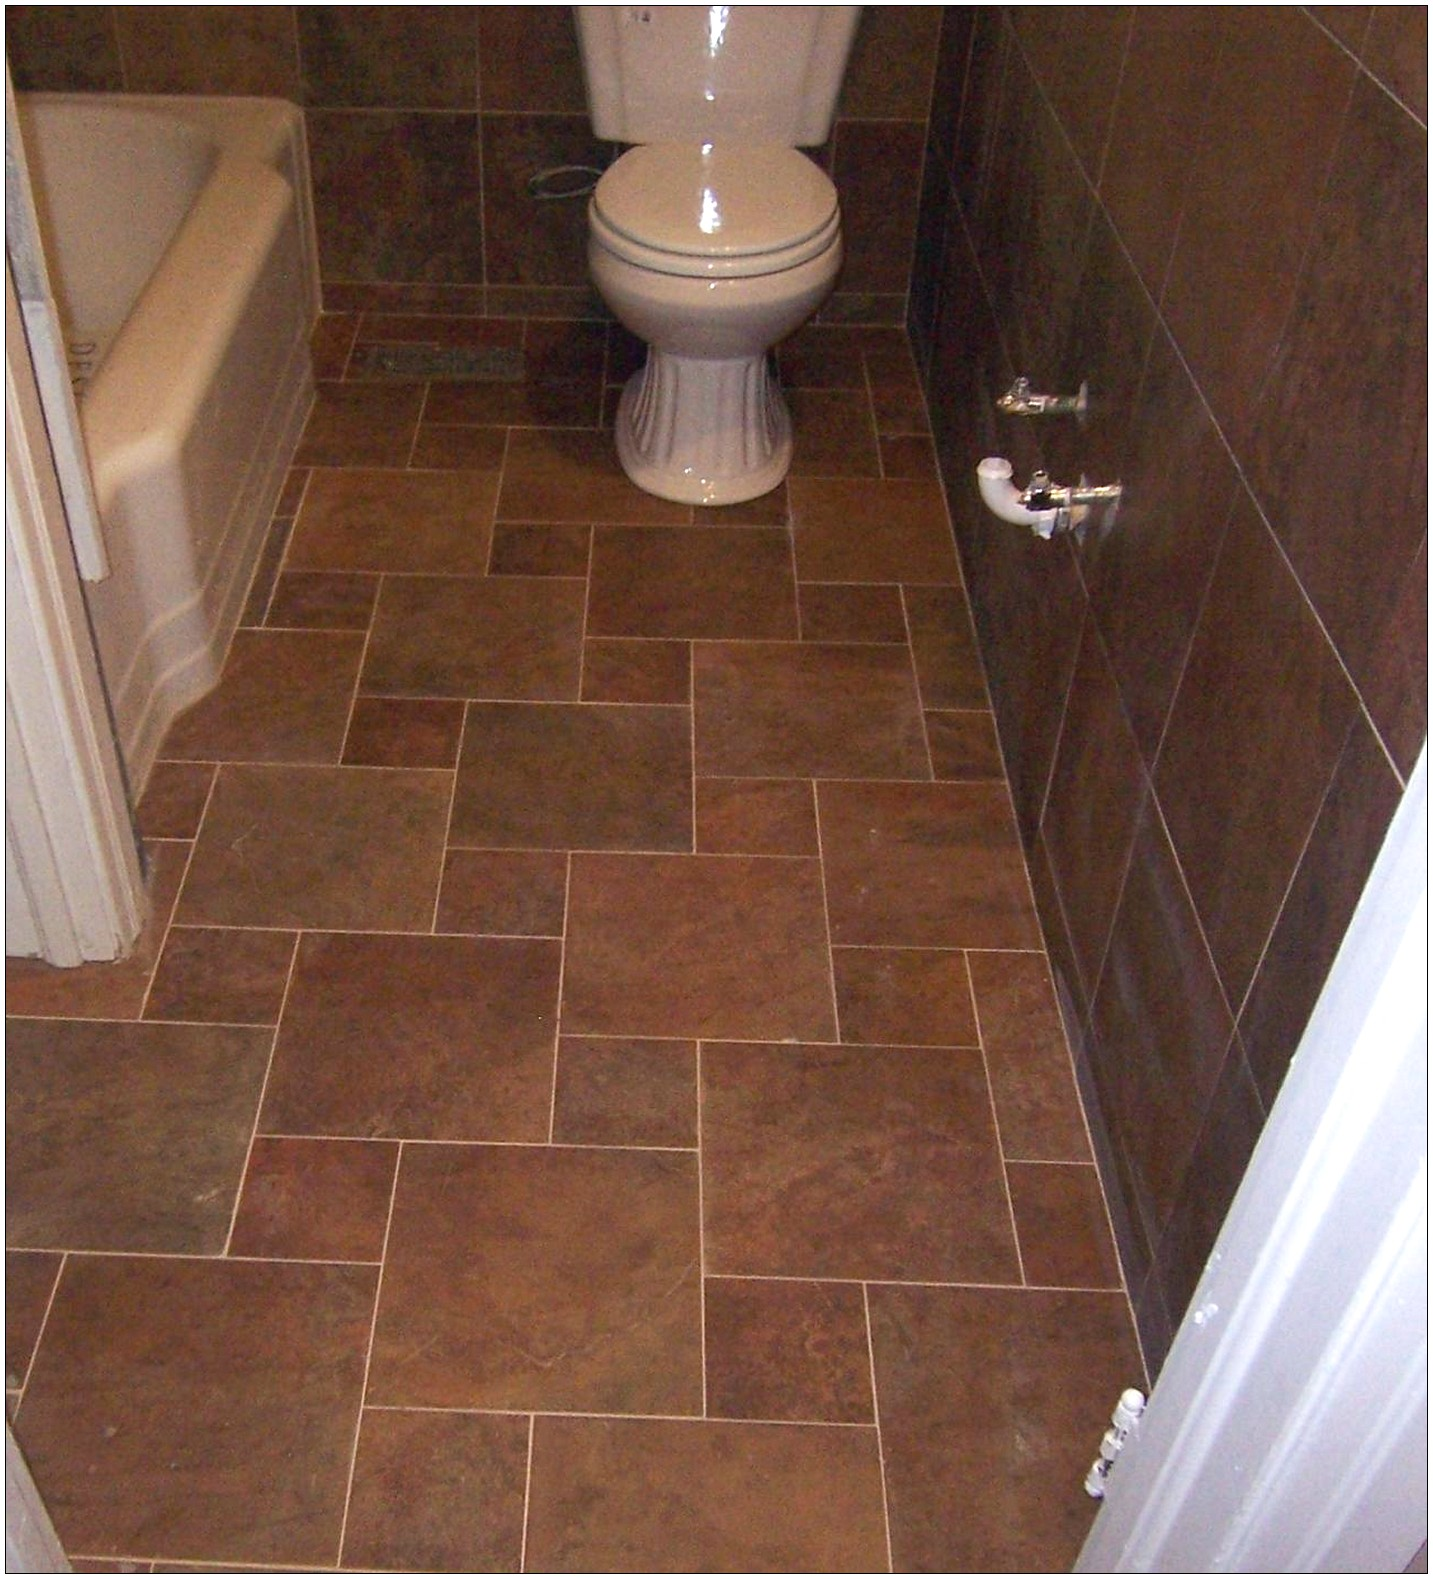 Bathroom Floor Ceramic Tile Design Ideas ~ Wonderful ideas and pictures of decorative bathroom